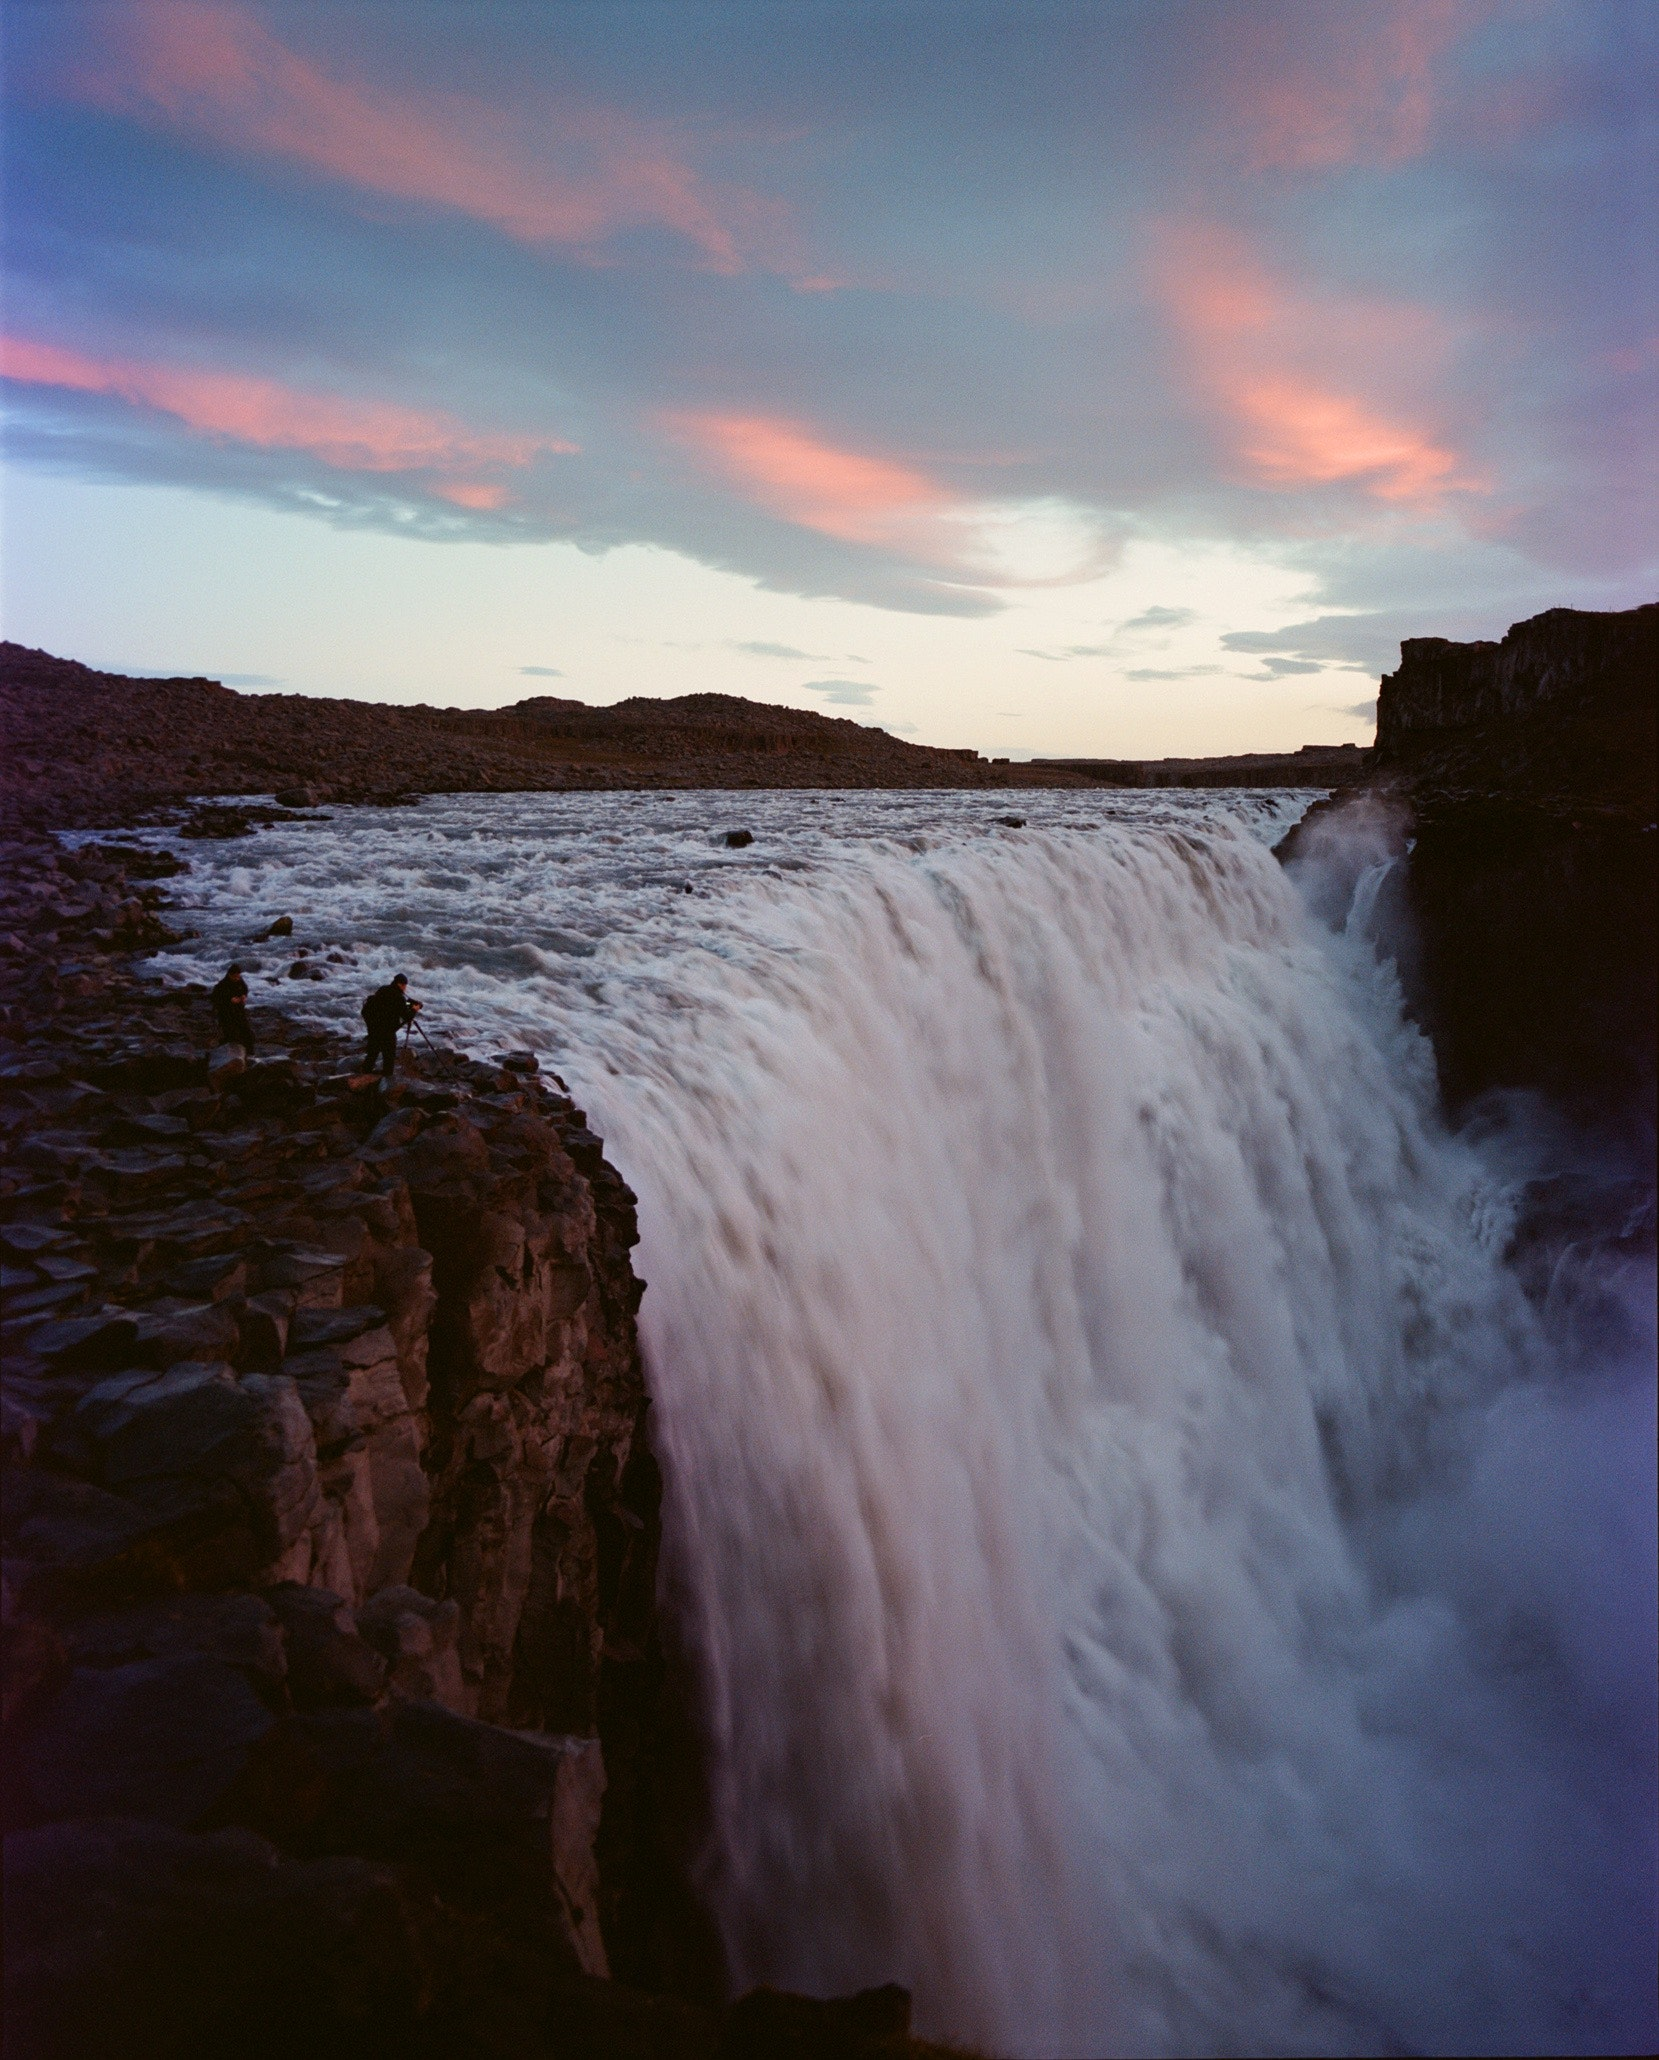 Dettifoss, a remote waterfall in northeast Iceland, is thought to be the most powerful waterfall in Europe. And no, there are no protective guardrails.